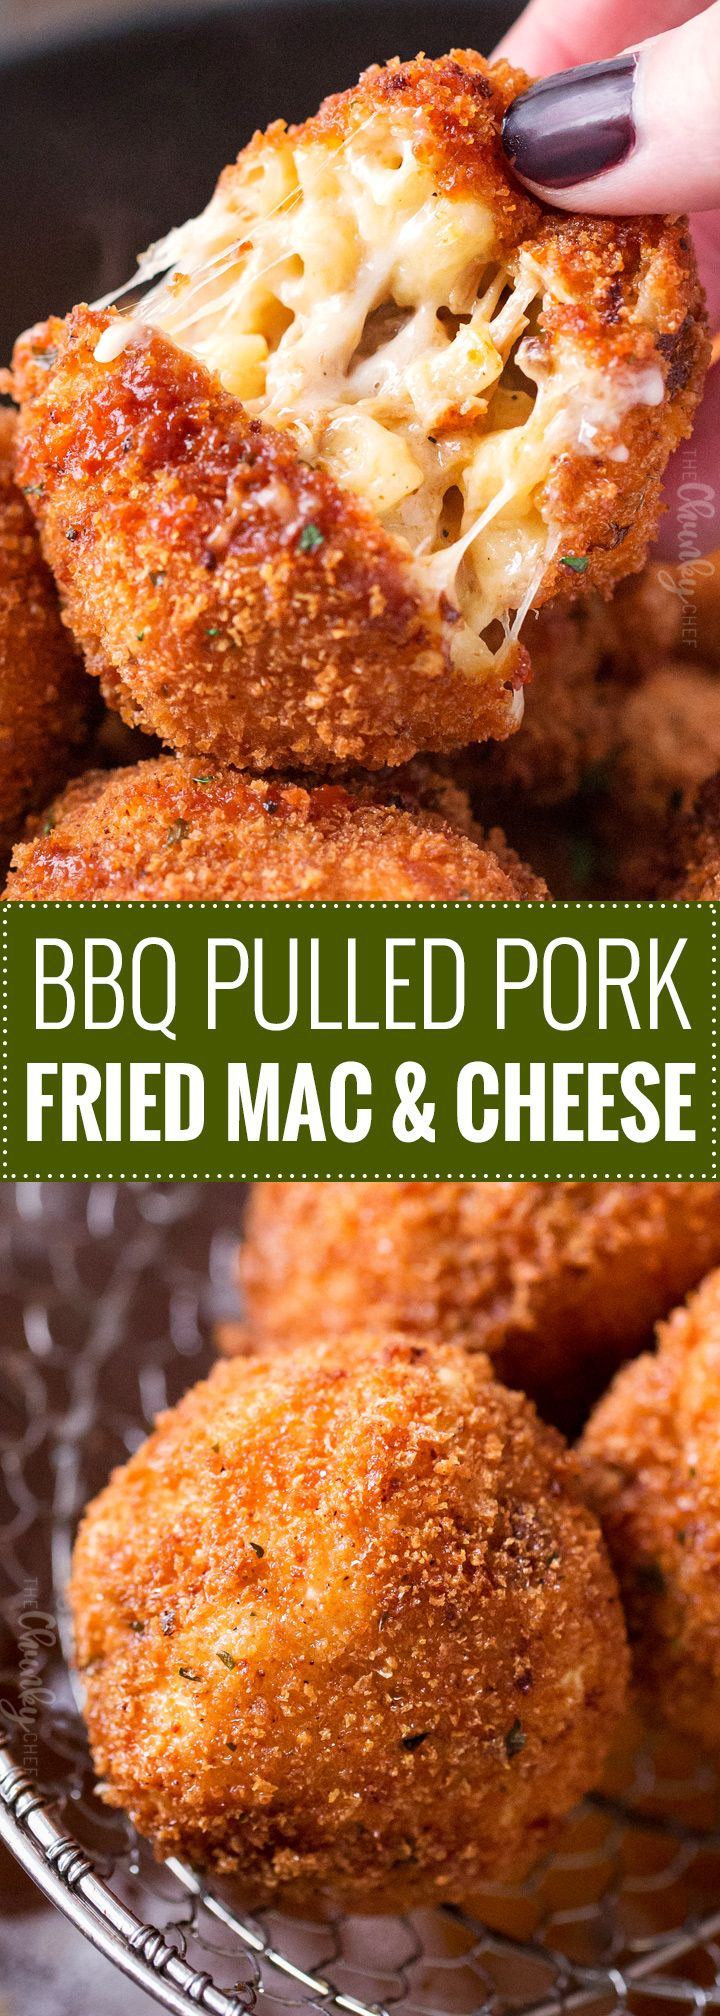 BBQ Pulled Pork Fried Mac and Cheese Bites   5 cheese homemadeMac and cheese, slow cooker bbq pulled pork, combined and breaded in crispy spiced panko and fried until perfectly golden!   https://thechunkychef.com   #appetizer #gameday #tailgating #friedmacandcheese #pulledpork